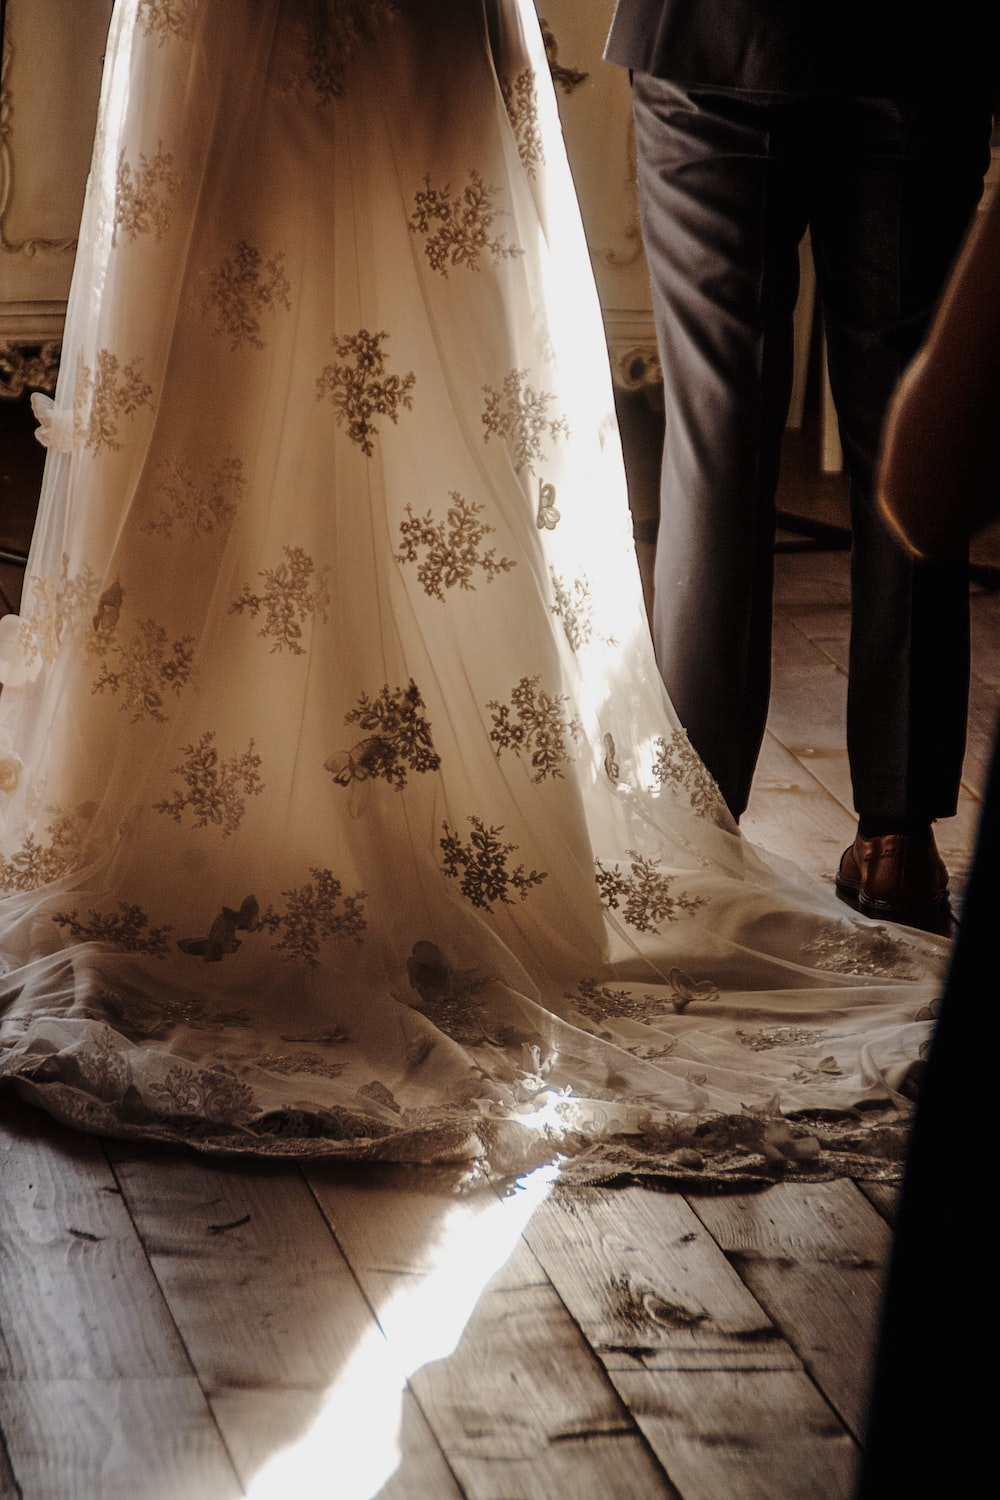 person wearing white lace floral wedding dress standing on brown wooden floor